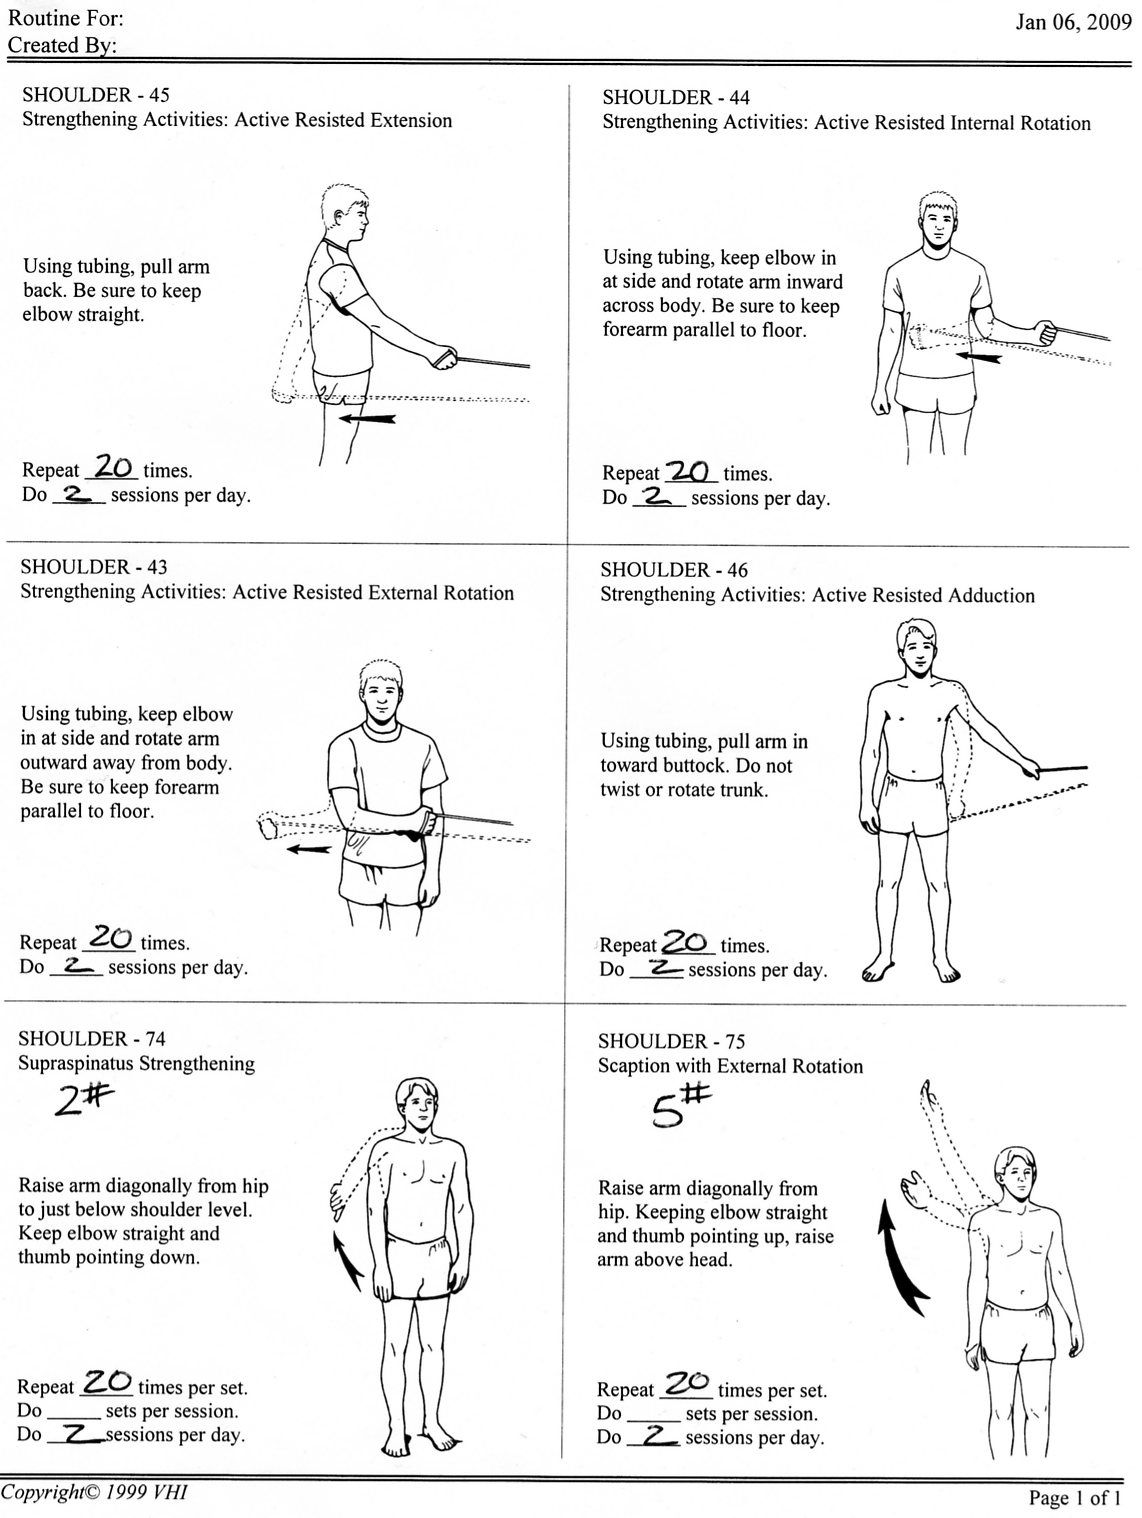 Frozen shoulder and physical therapy - I Have Been Seeing A Physical Therapist For Almost A Month Now Due To A Weak Rotator Cuff He Gave Me A Few Sheets Of Exercises To Help Strengthen It